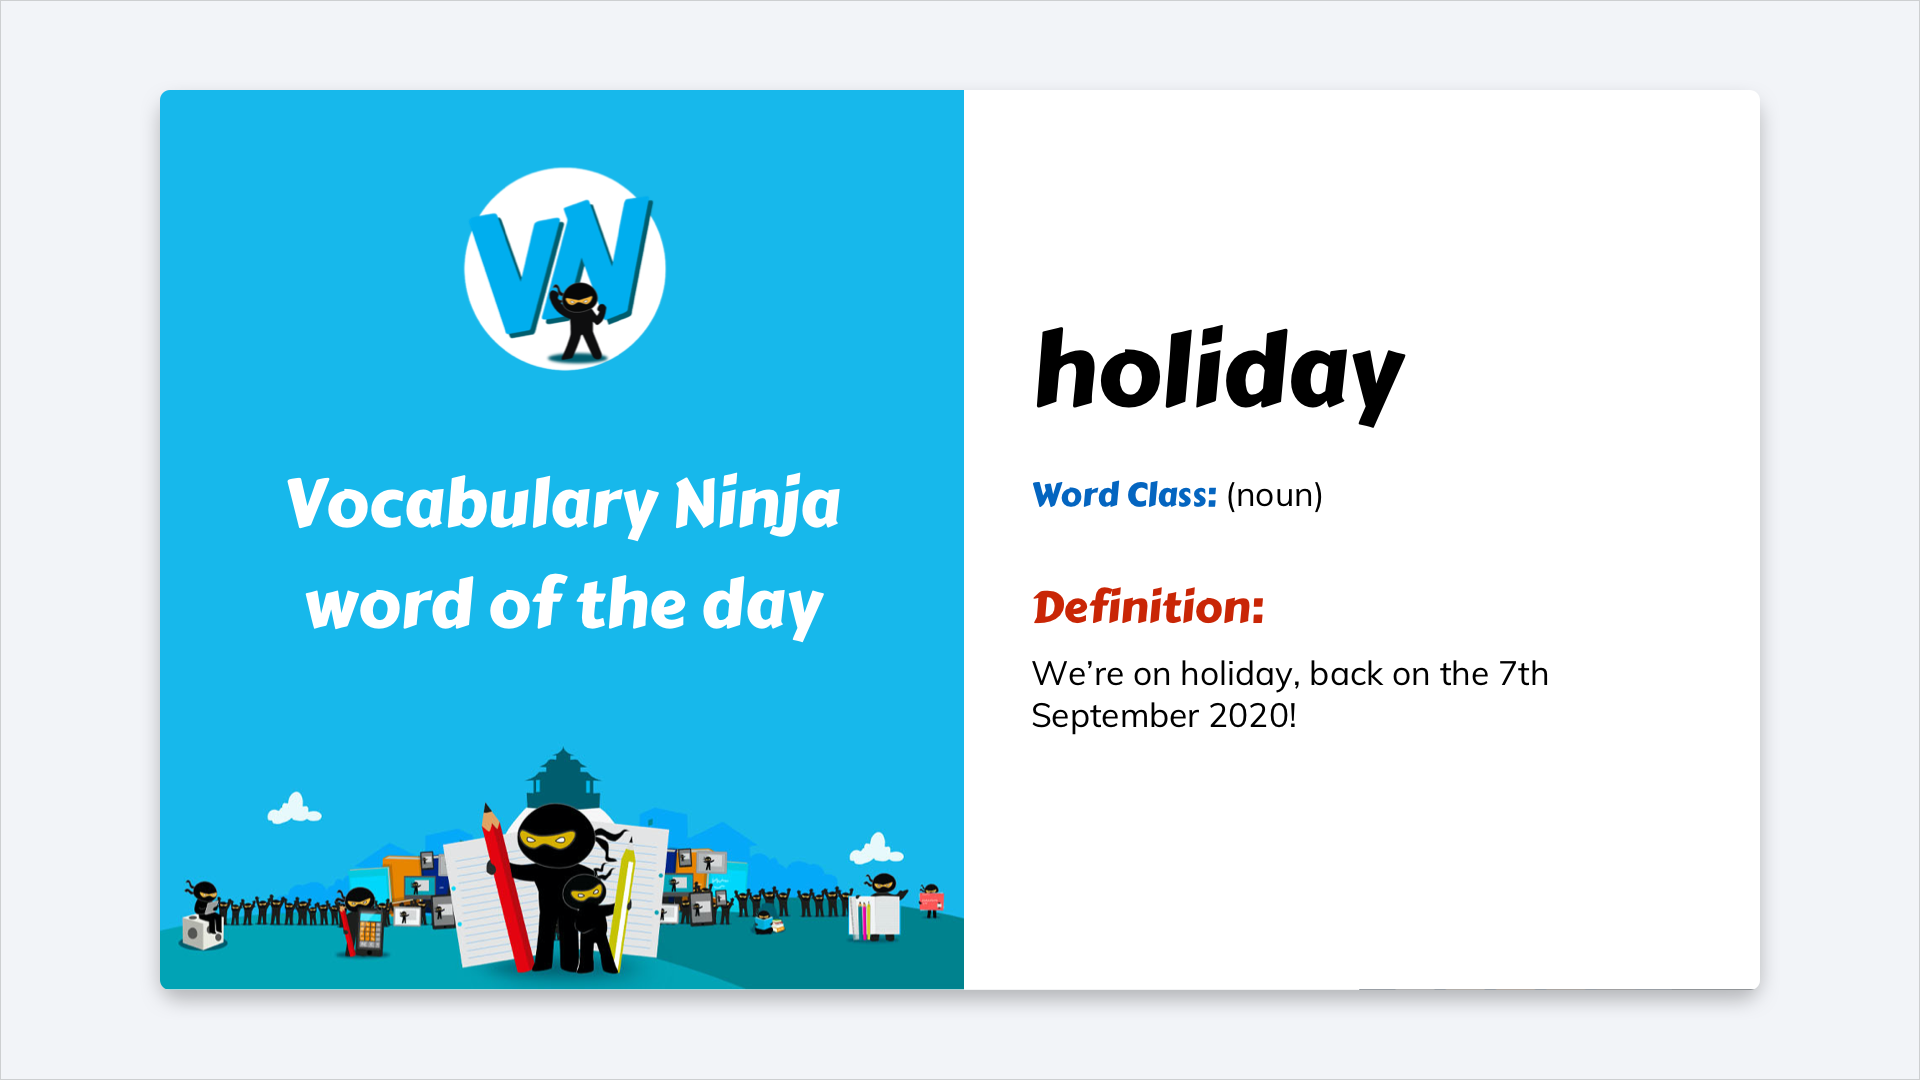 Vocabulary Ninja Brings Word of the Day to Your Signage TrilbyTV